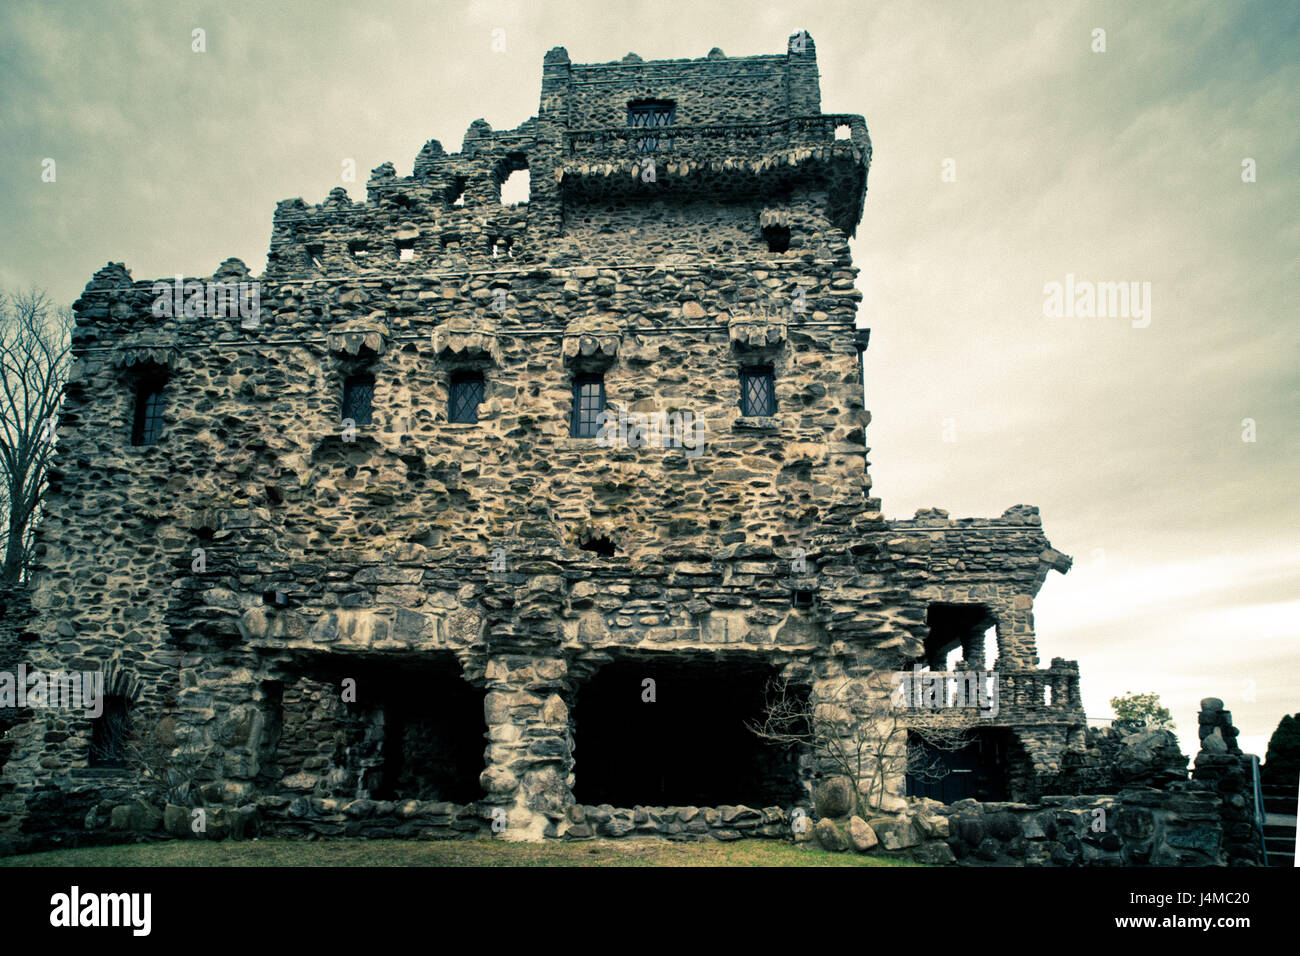 Historic Gillette Castile in East Haddam, Connecticut - Stock Image